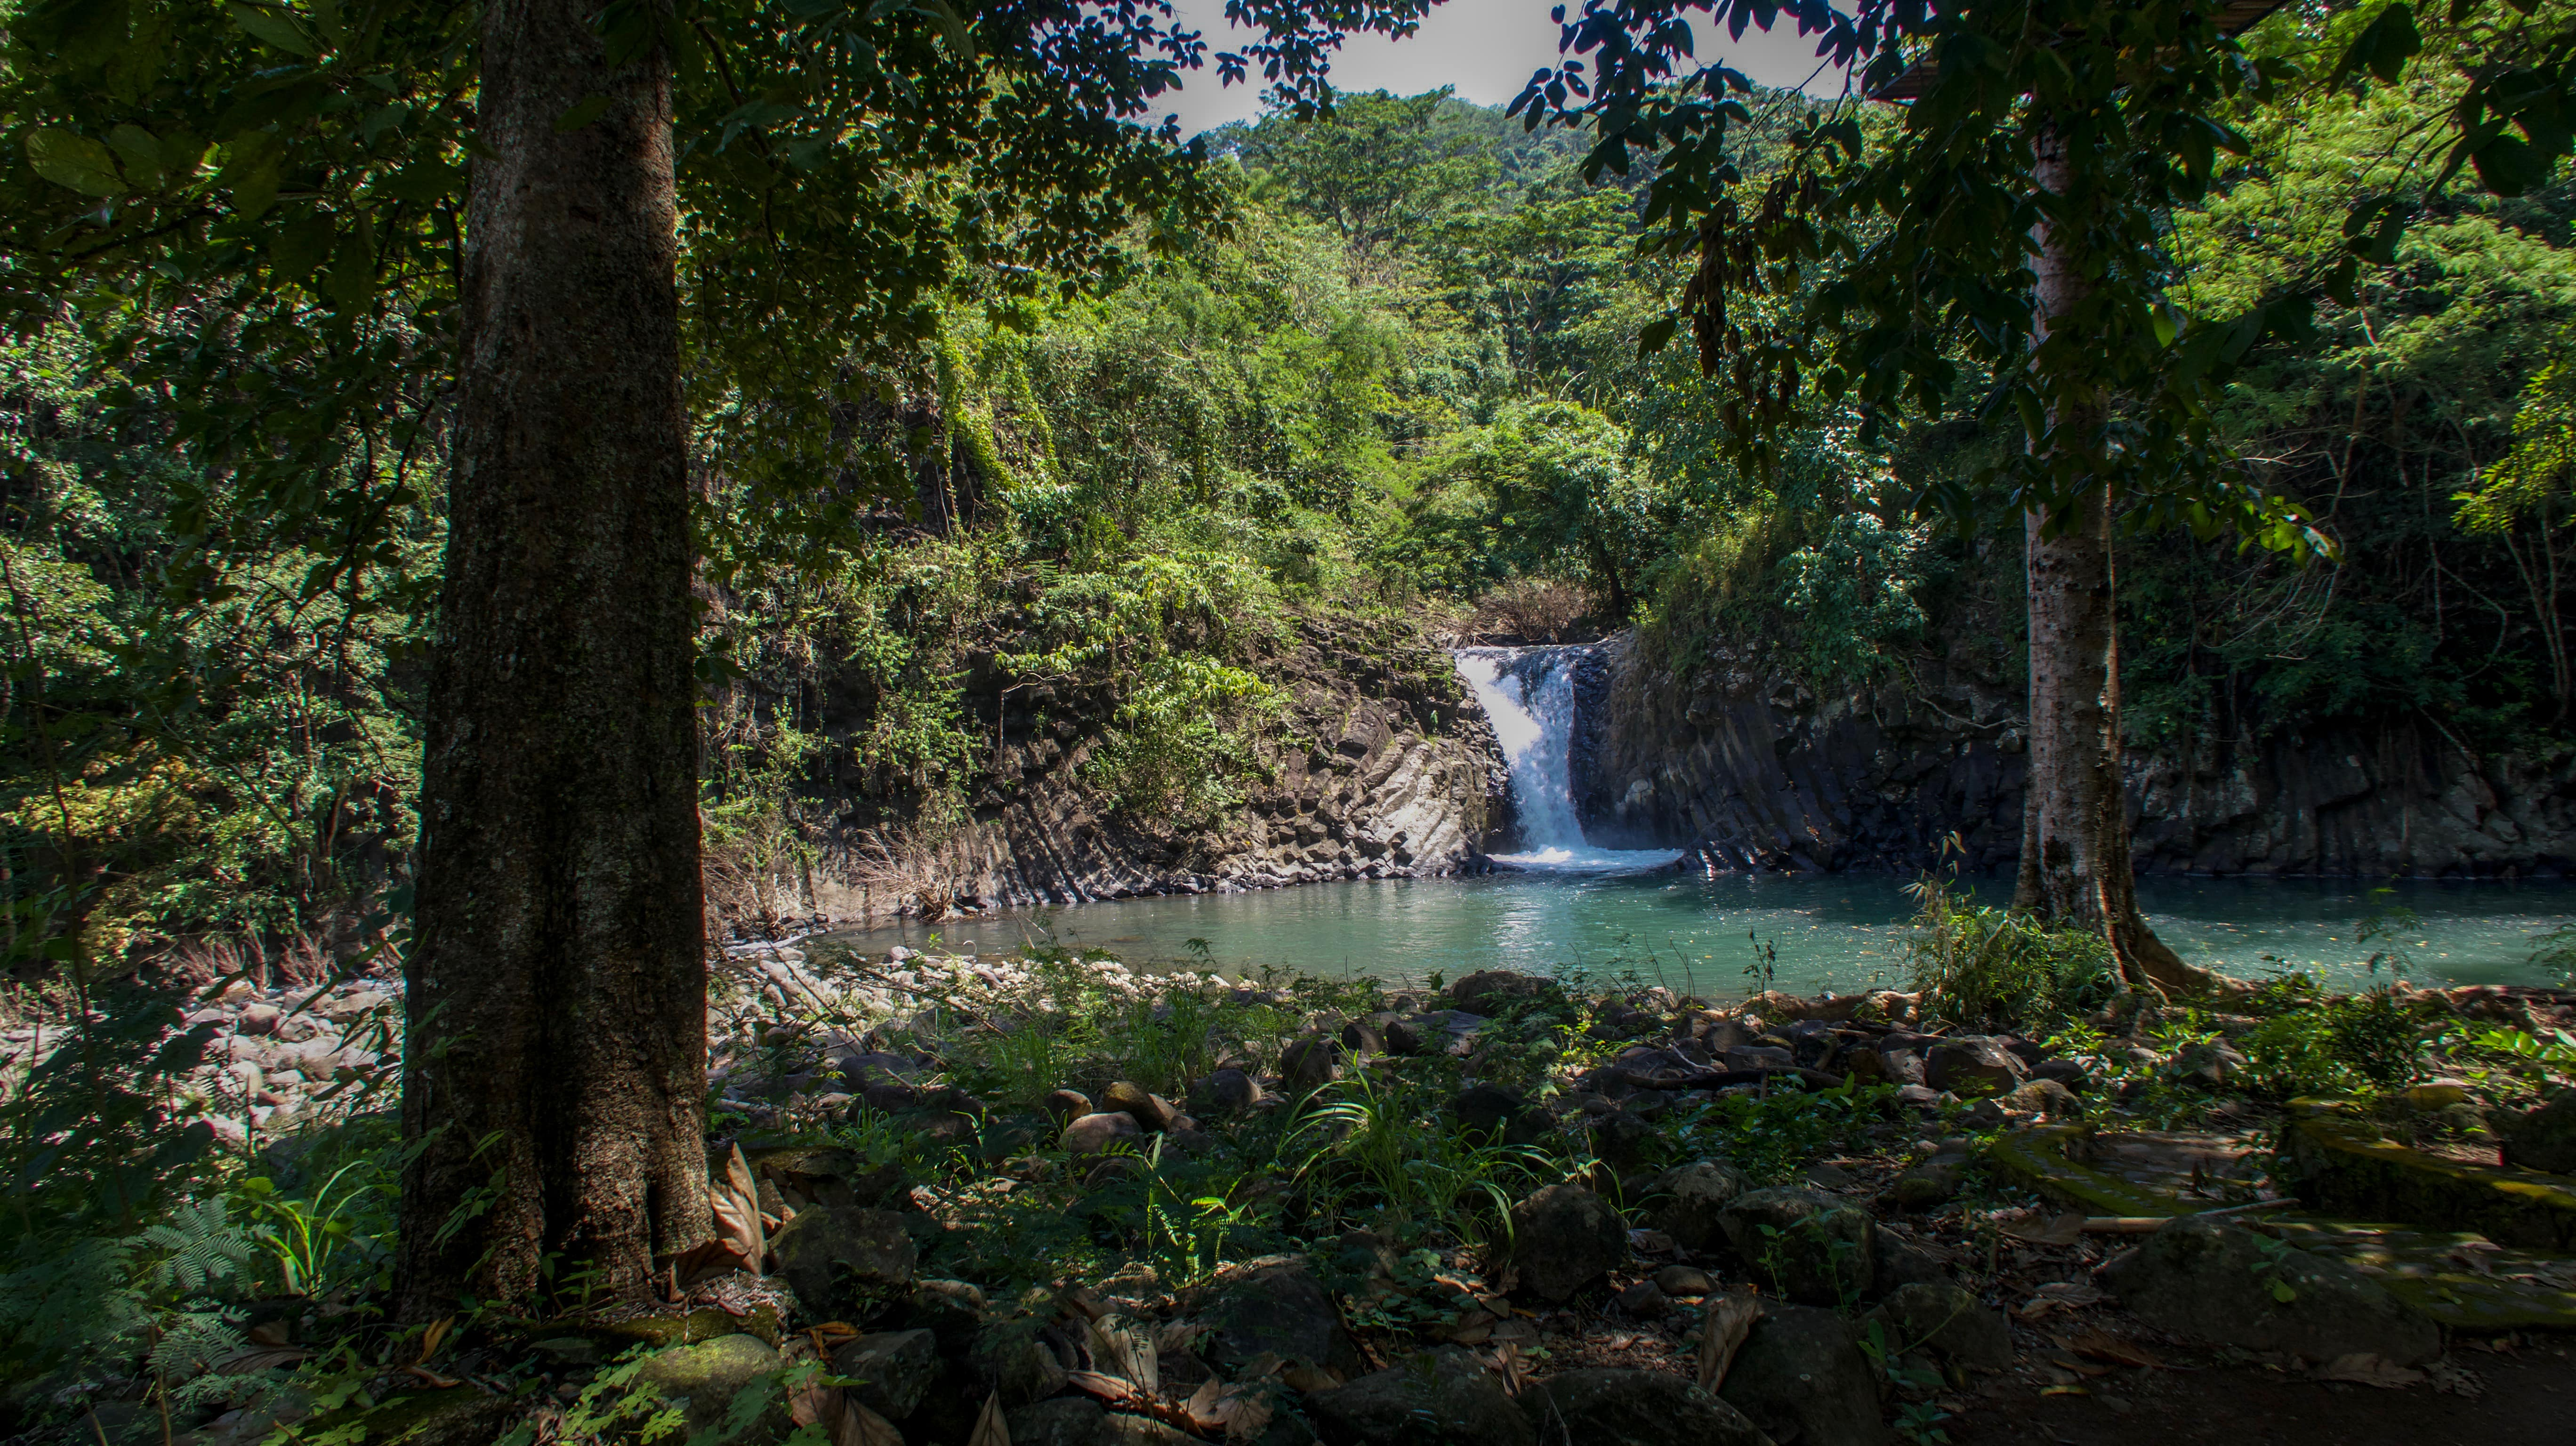 dunsulan falls and trees in bataan philippines